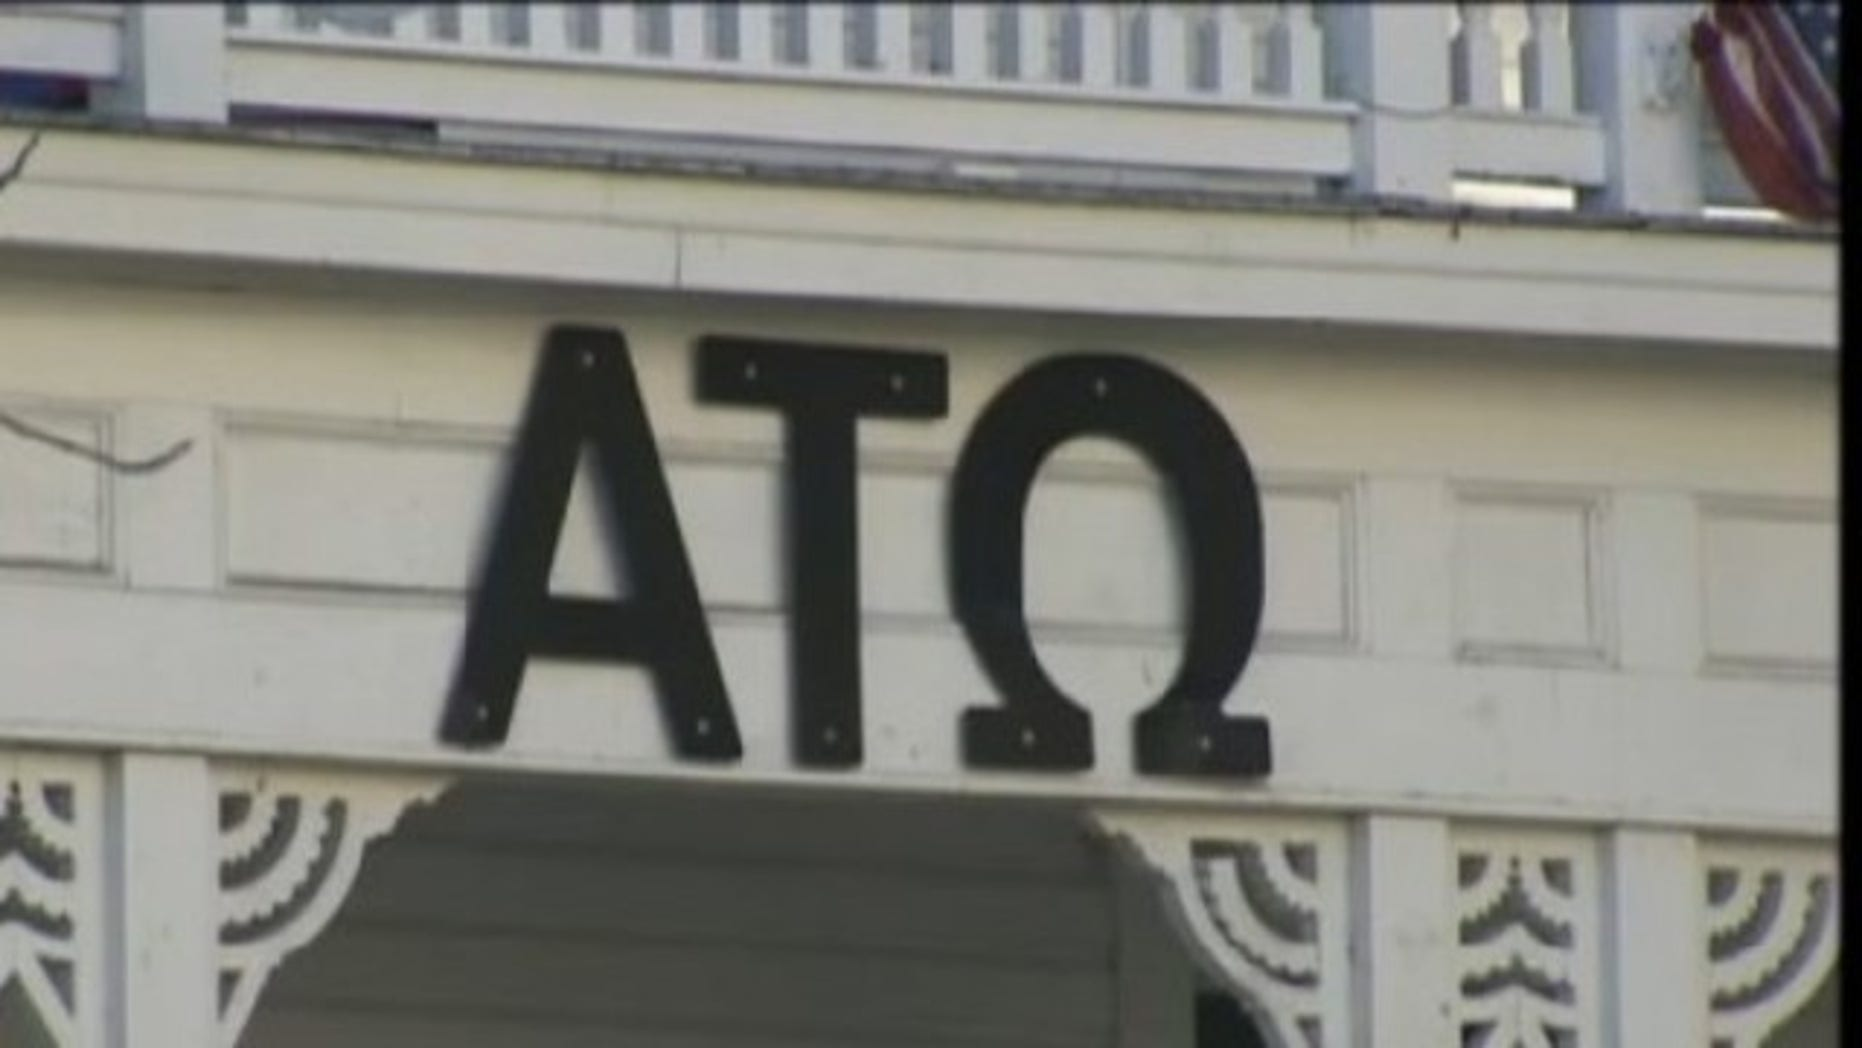 The Alpha Tau Omega fraternity house at Texas State.